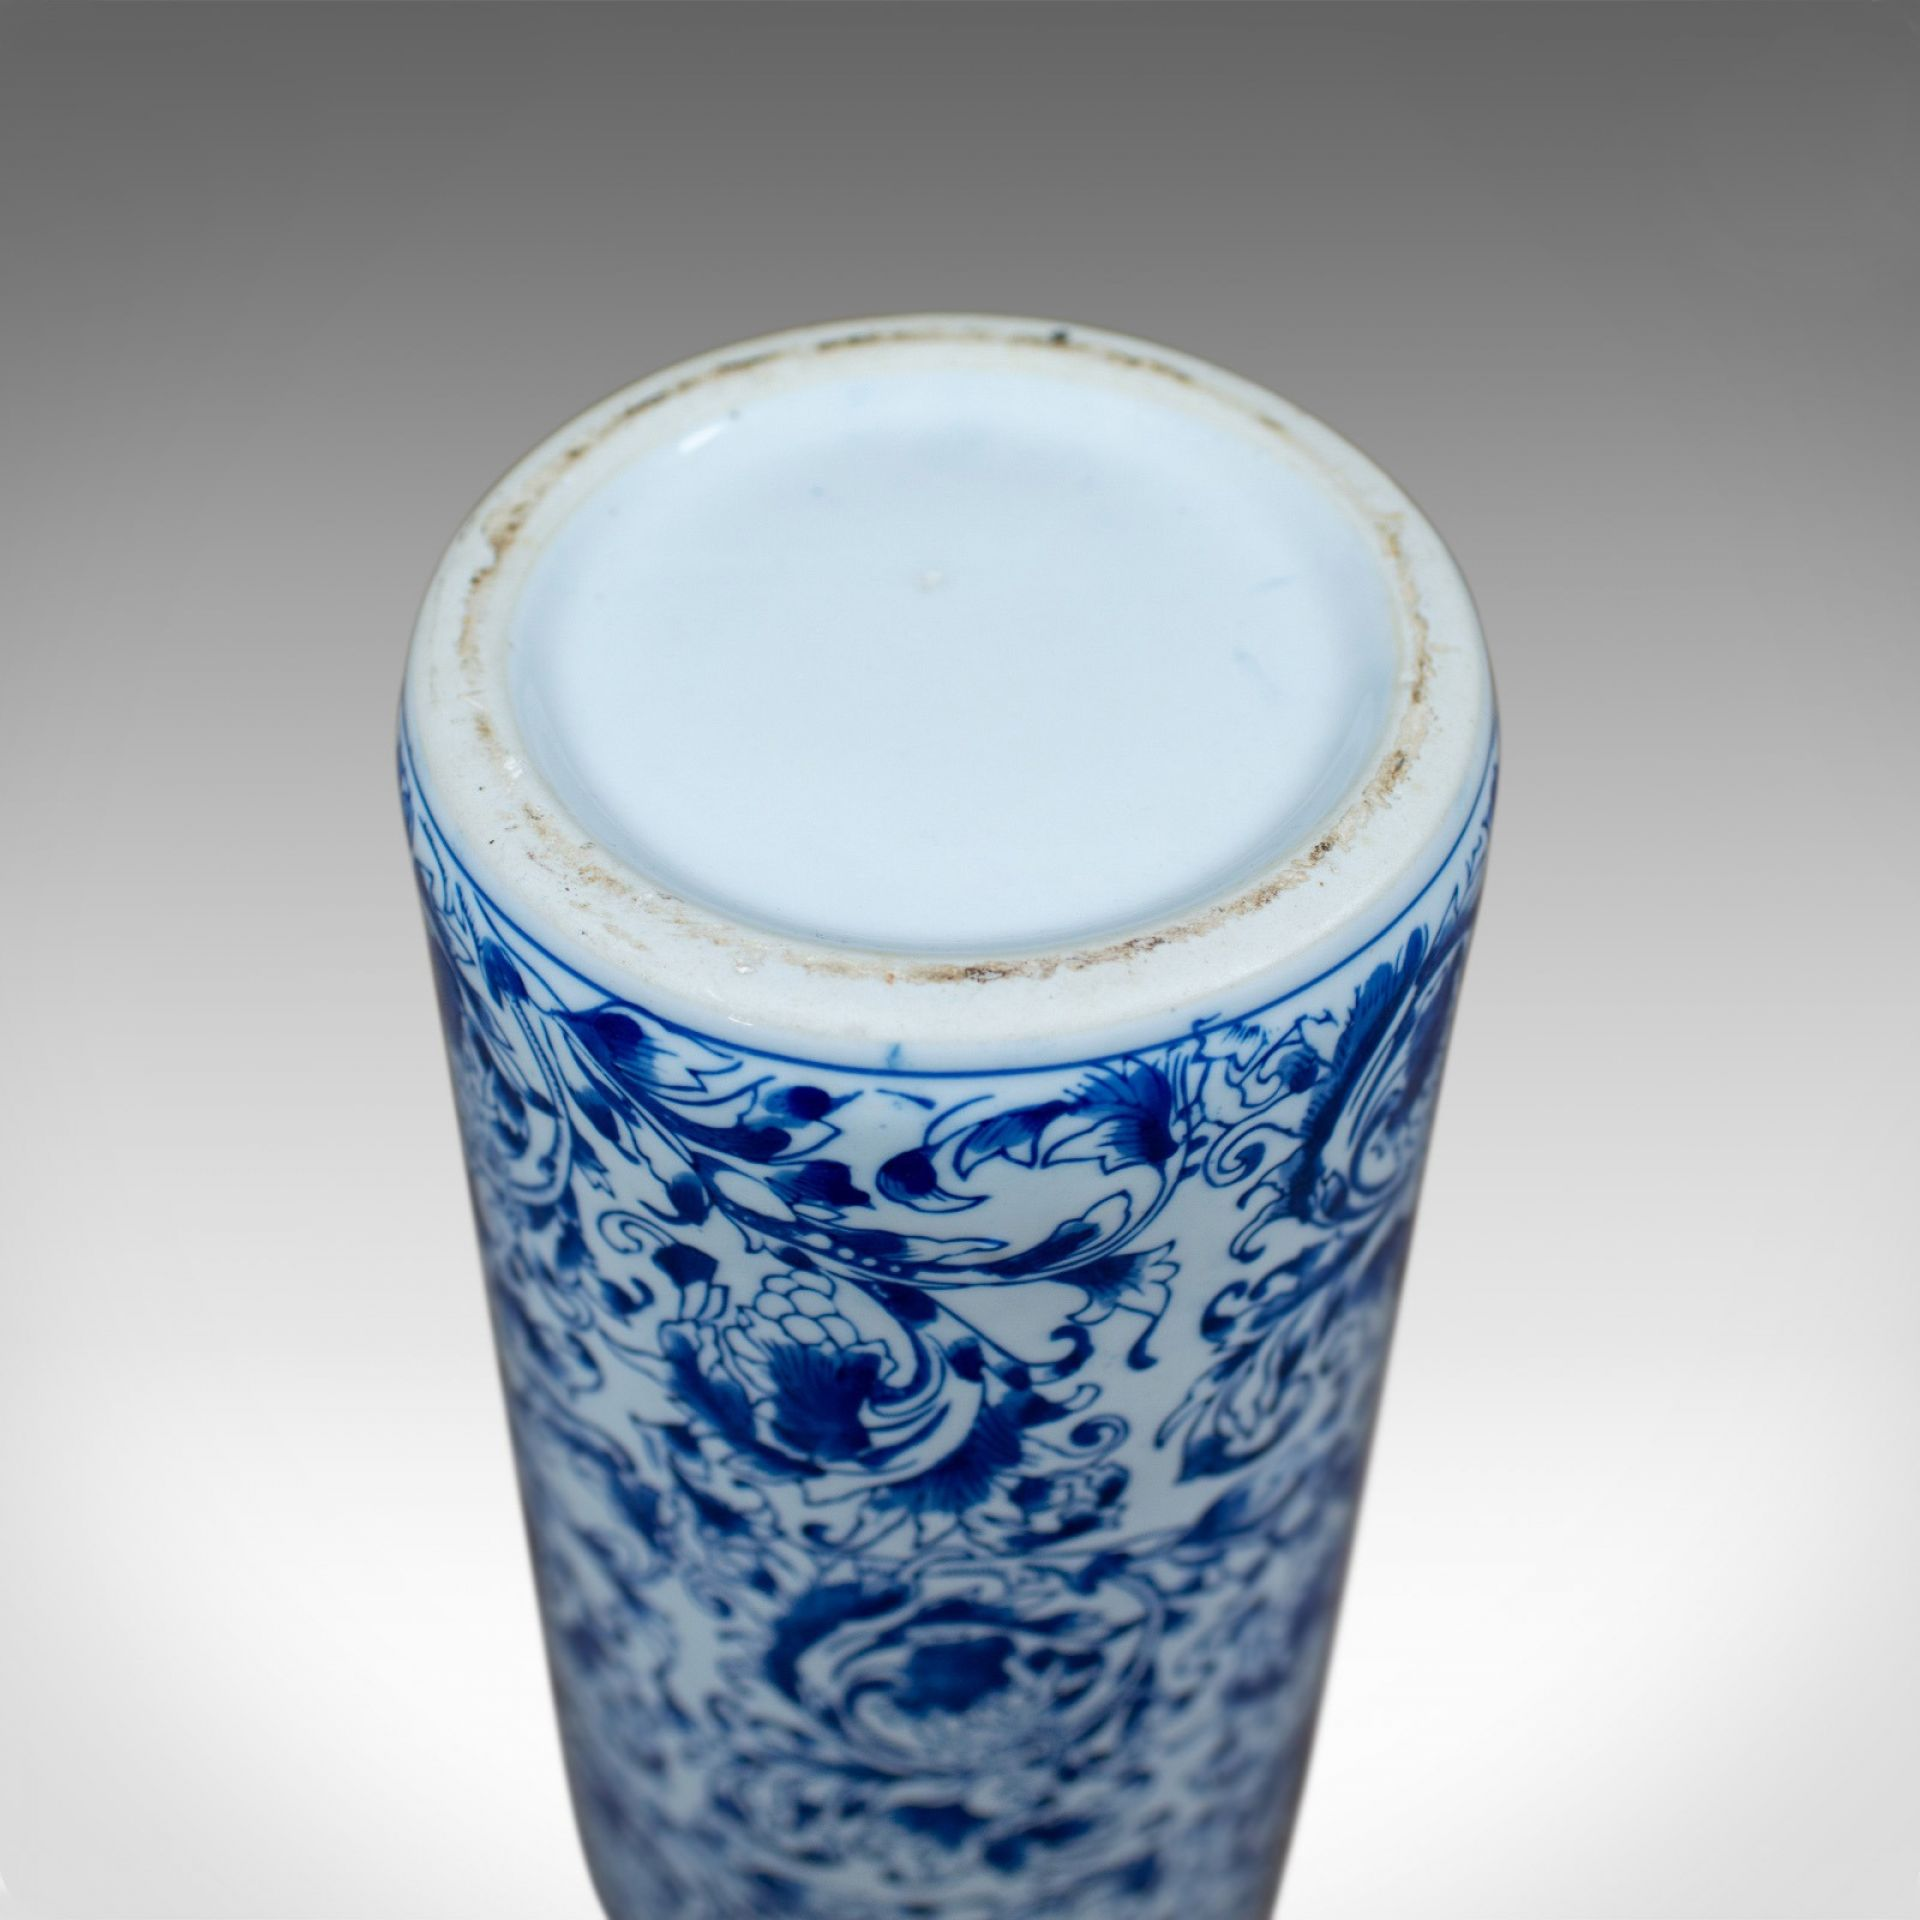 Vintage Umbrella Stand, Japanese, Blue and White, Ceramic, Stick Pot Mid C20th